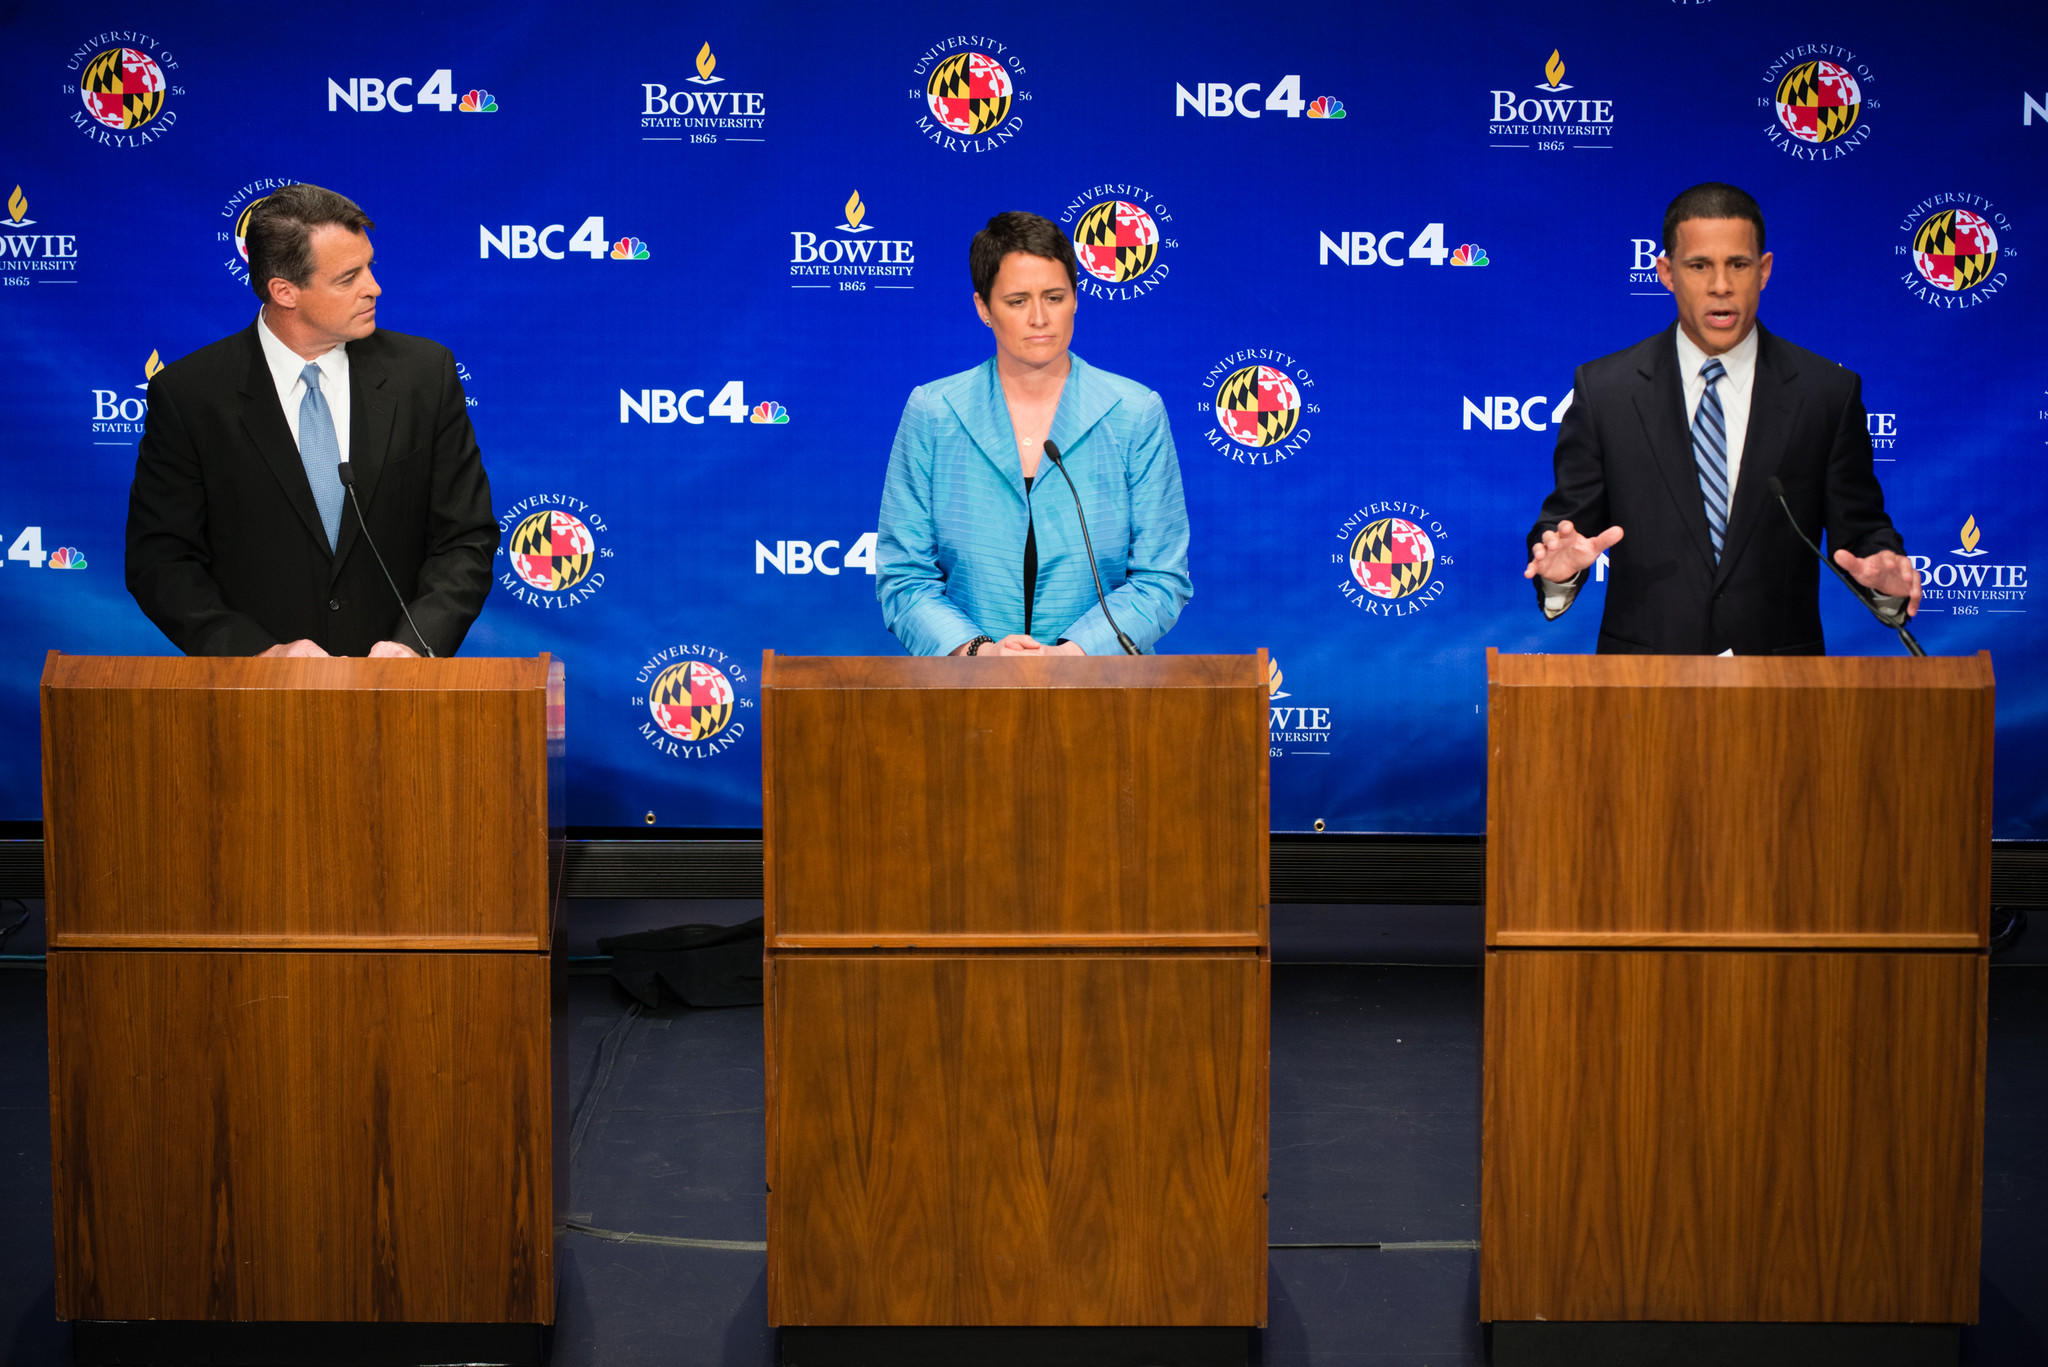 COLLEGE PARK, MD - MAY 7: From left to right are the candidates, Attorney General Doug Gansler, Delegate Heather Mizeur, and Lieutenant Governor Anthony Brown, during the debate. The Maryland Democratic Primary gubernatorial debate was held on Wednesday May 7, 2014 at the University of Maryland, College Park.